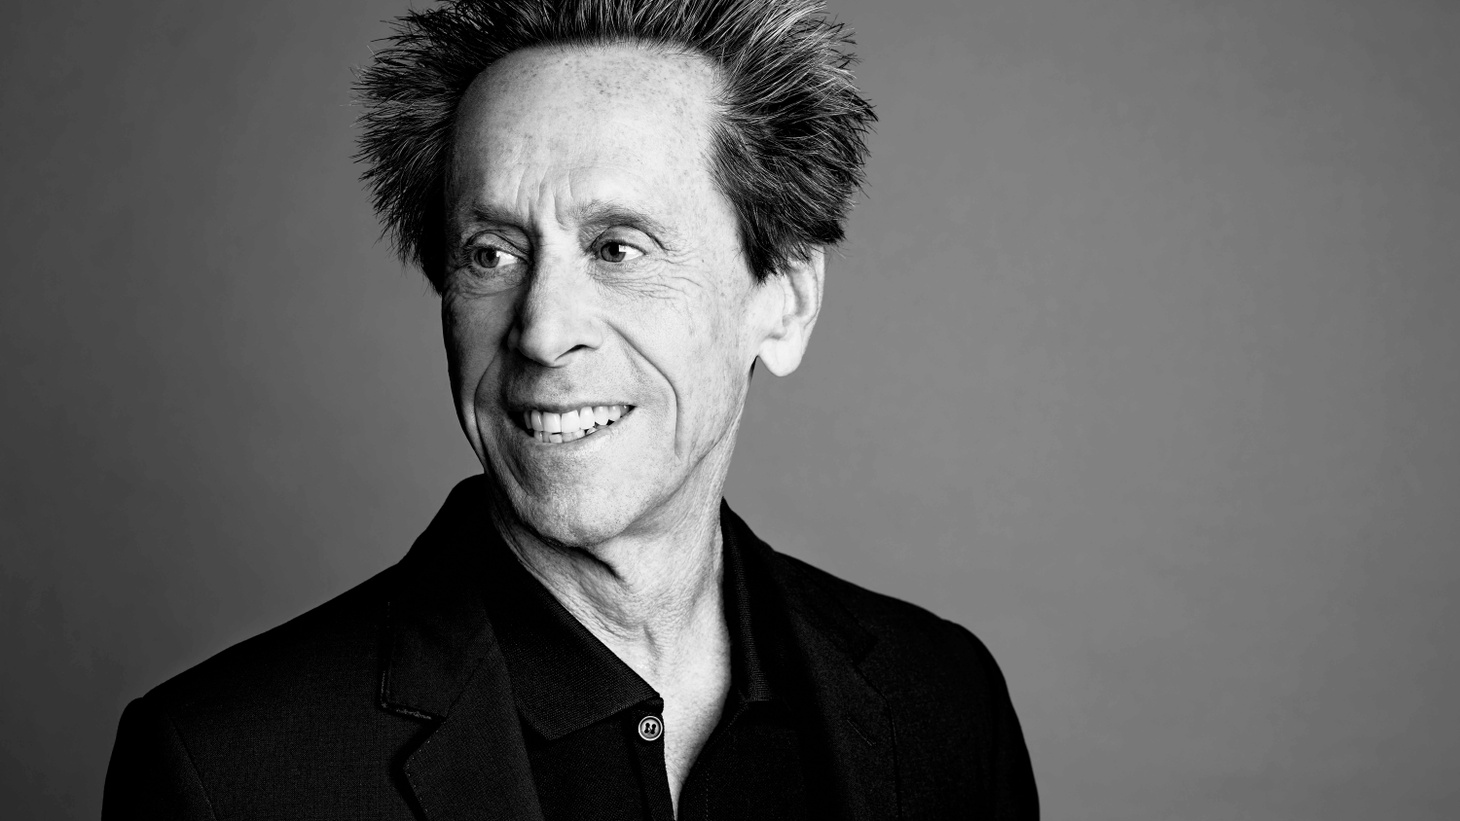 Brian Grazer has produced some of the most memorable movies of the last 30 years. He tells us how he's adapting to a rapidly changing film world and shares stories from his new book,A Curious Mind.